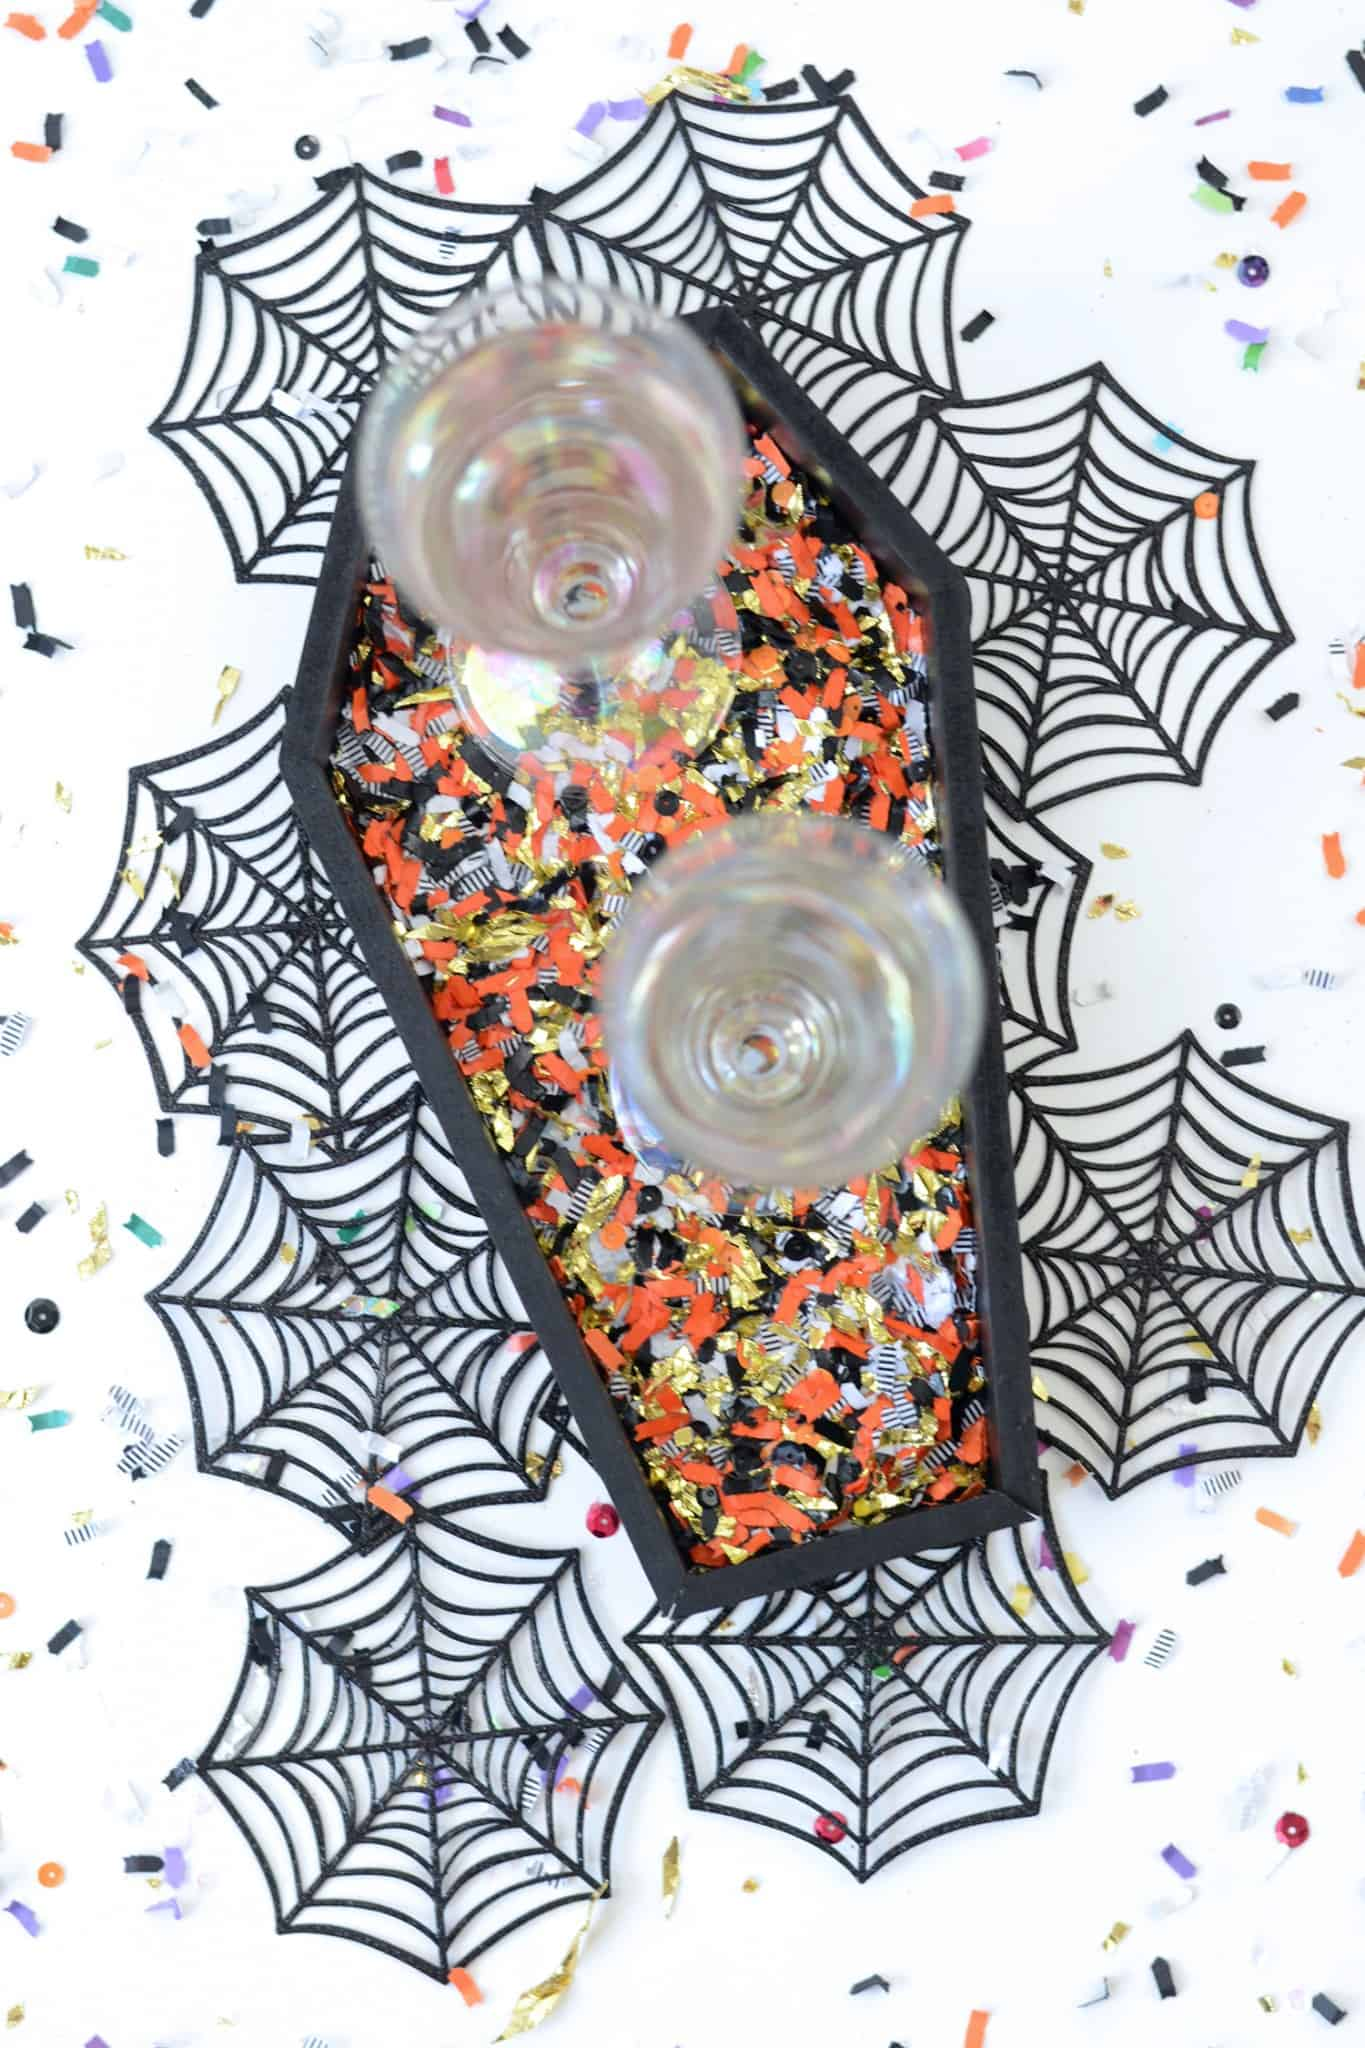 Spice up your Halloween table with DIY confetti coffin tray! It makes the perfect decoration for your next holiday soirée. And who doesn't love confetti?!